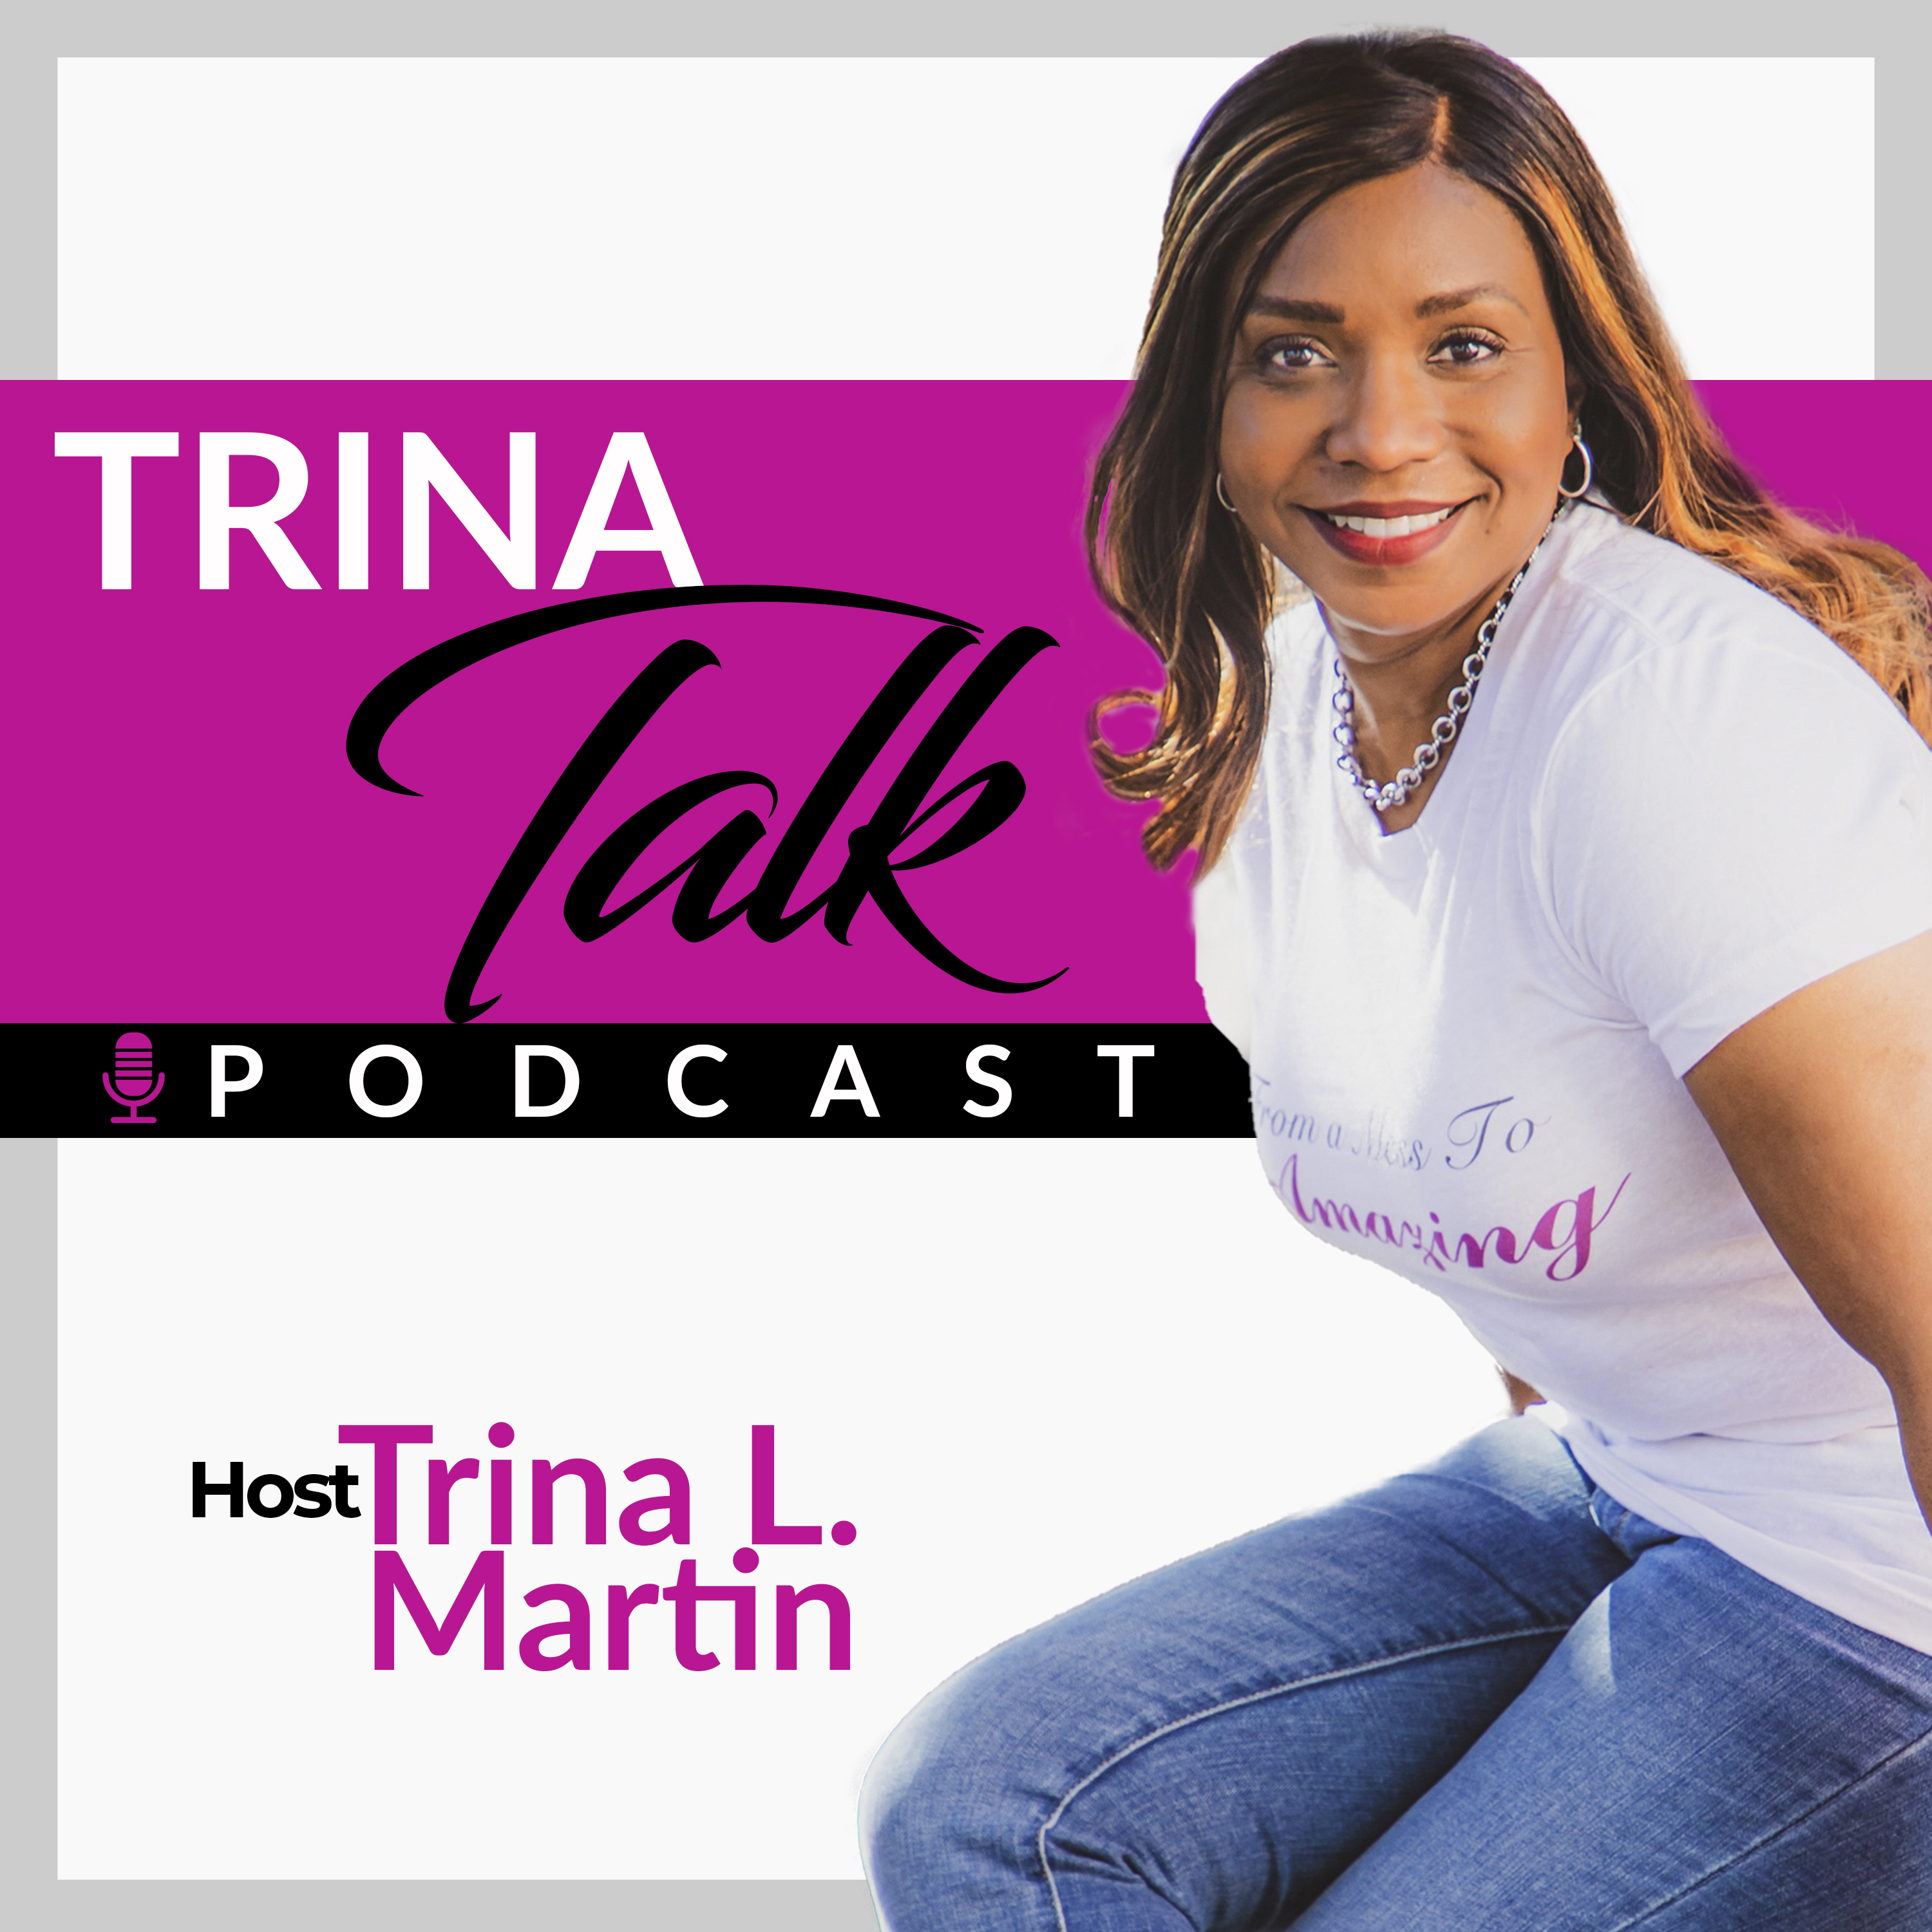 There is No Tax on Love w/ Dr. Lin Morel - TT 127